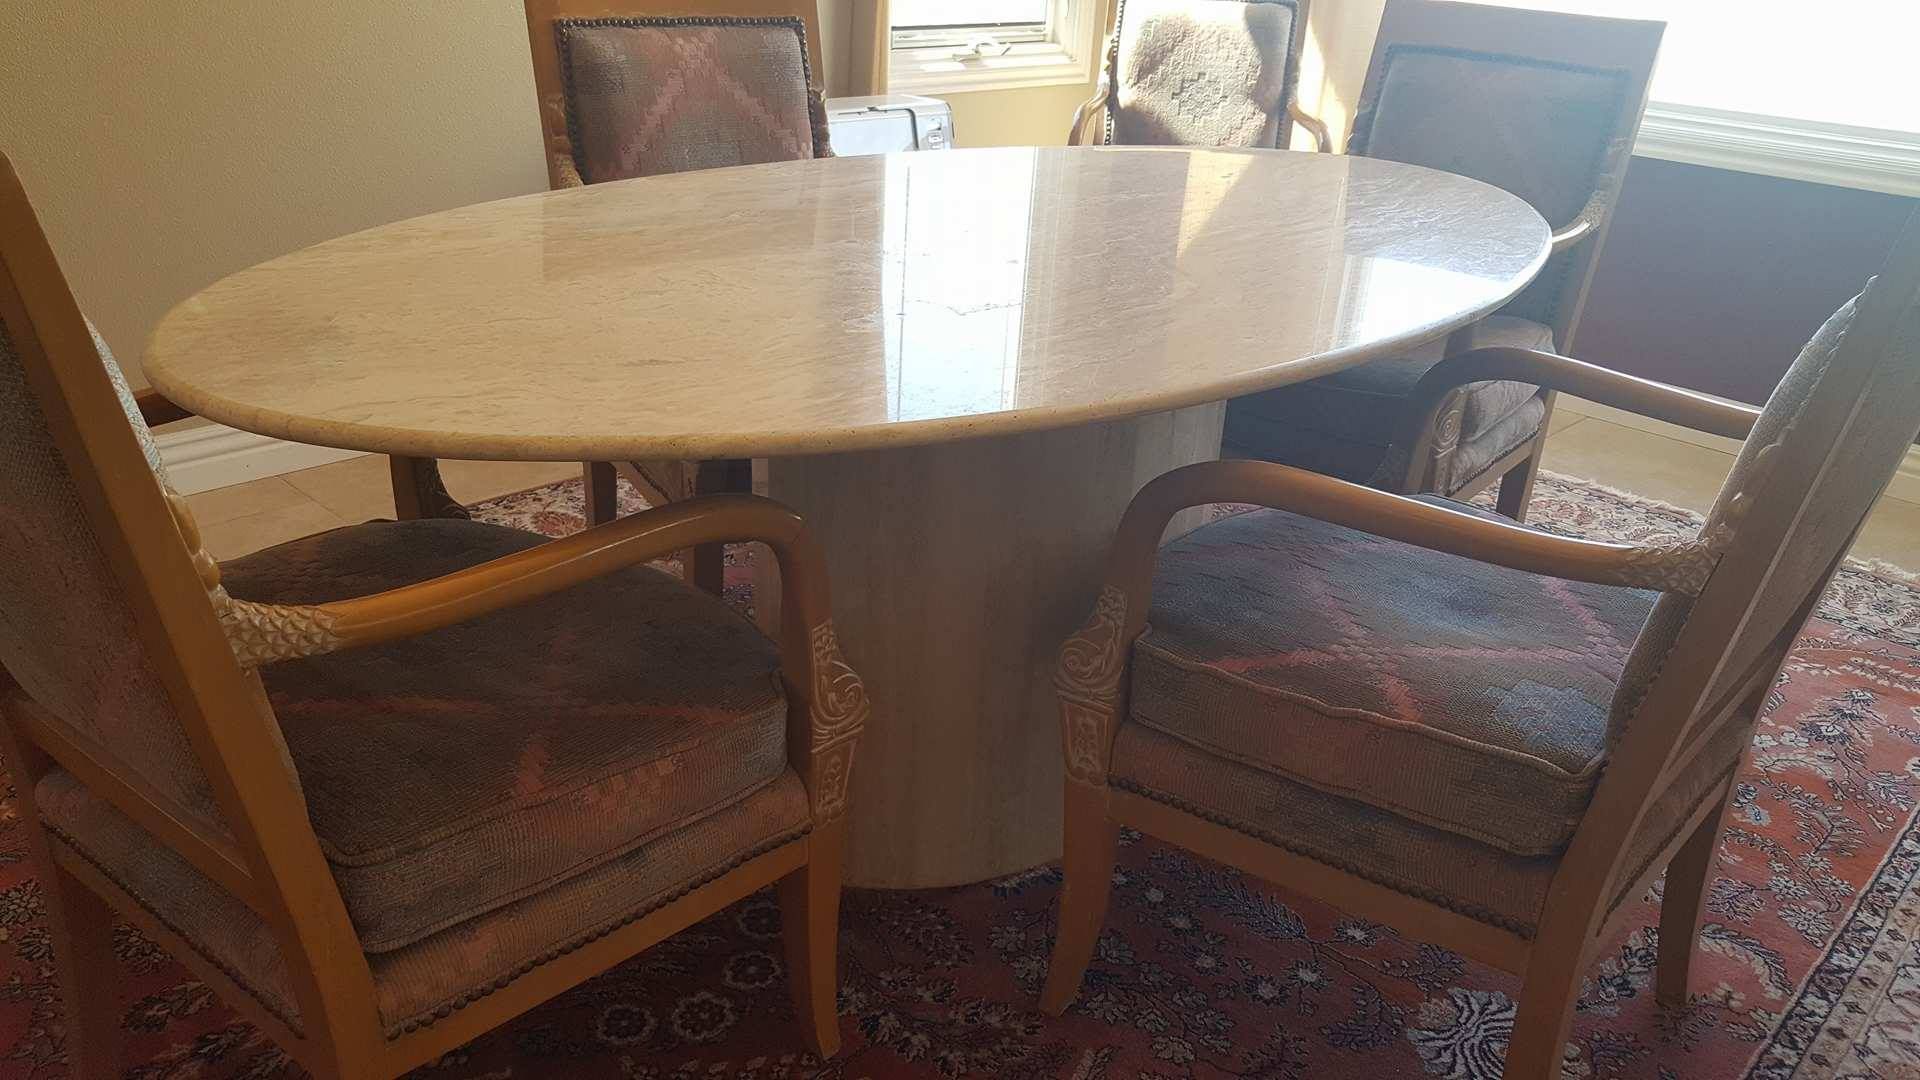 72 inch round dining table seats how many 100 round for Dining room tables 36 x 72